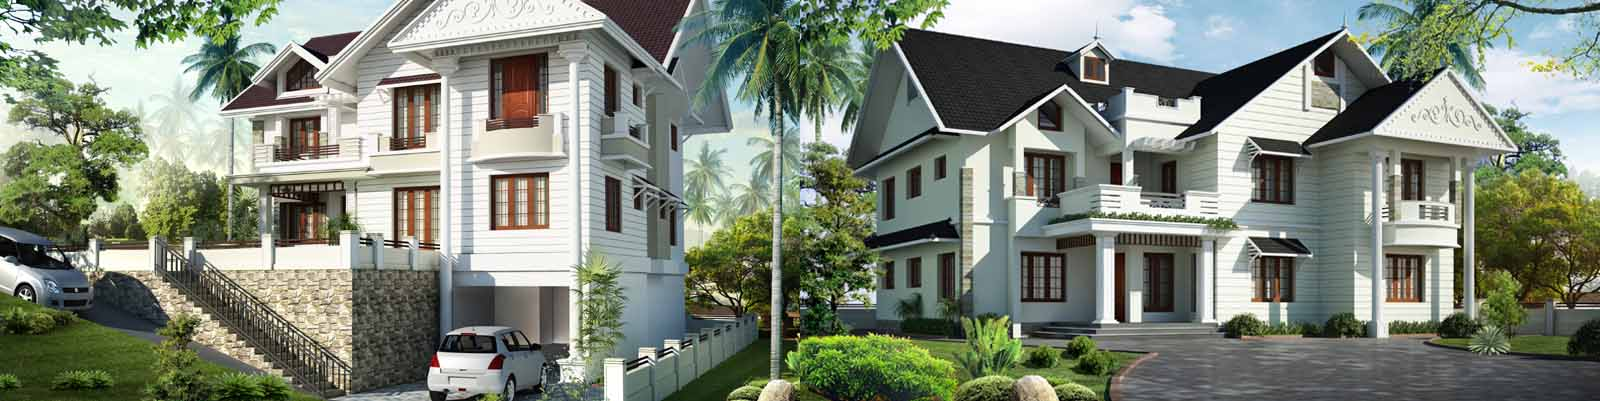 houses to buy in kothamangalam